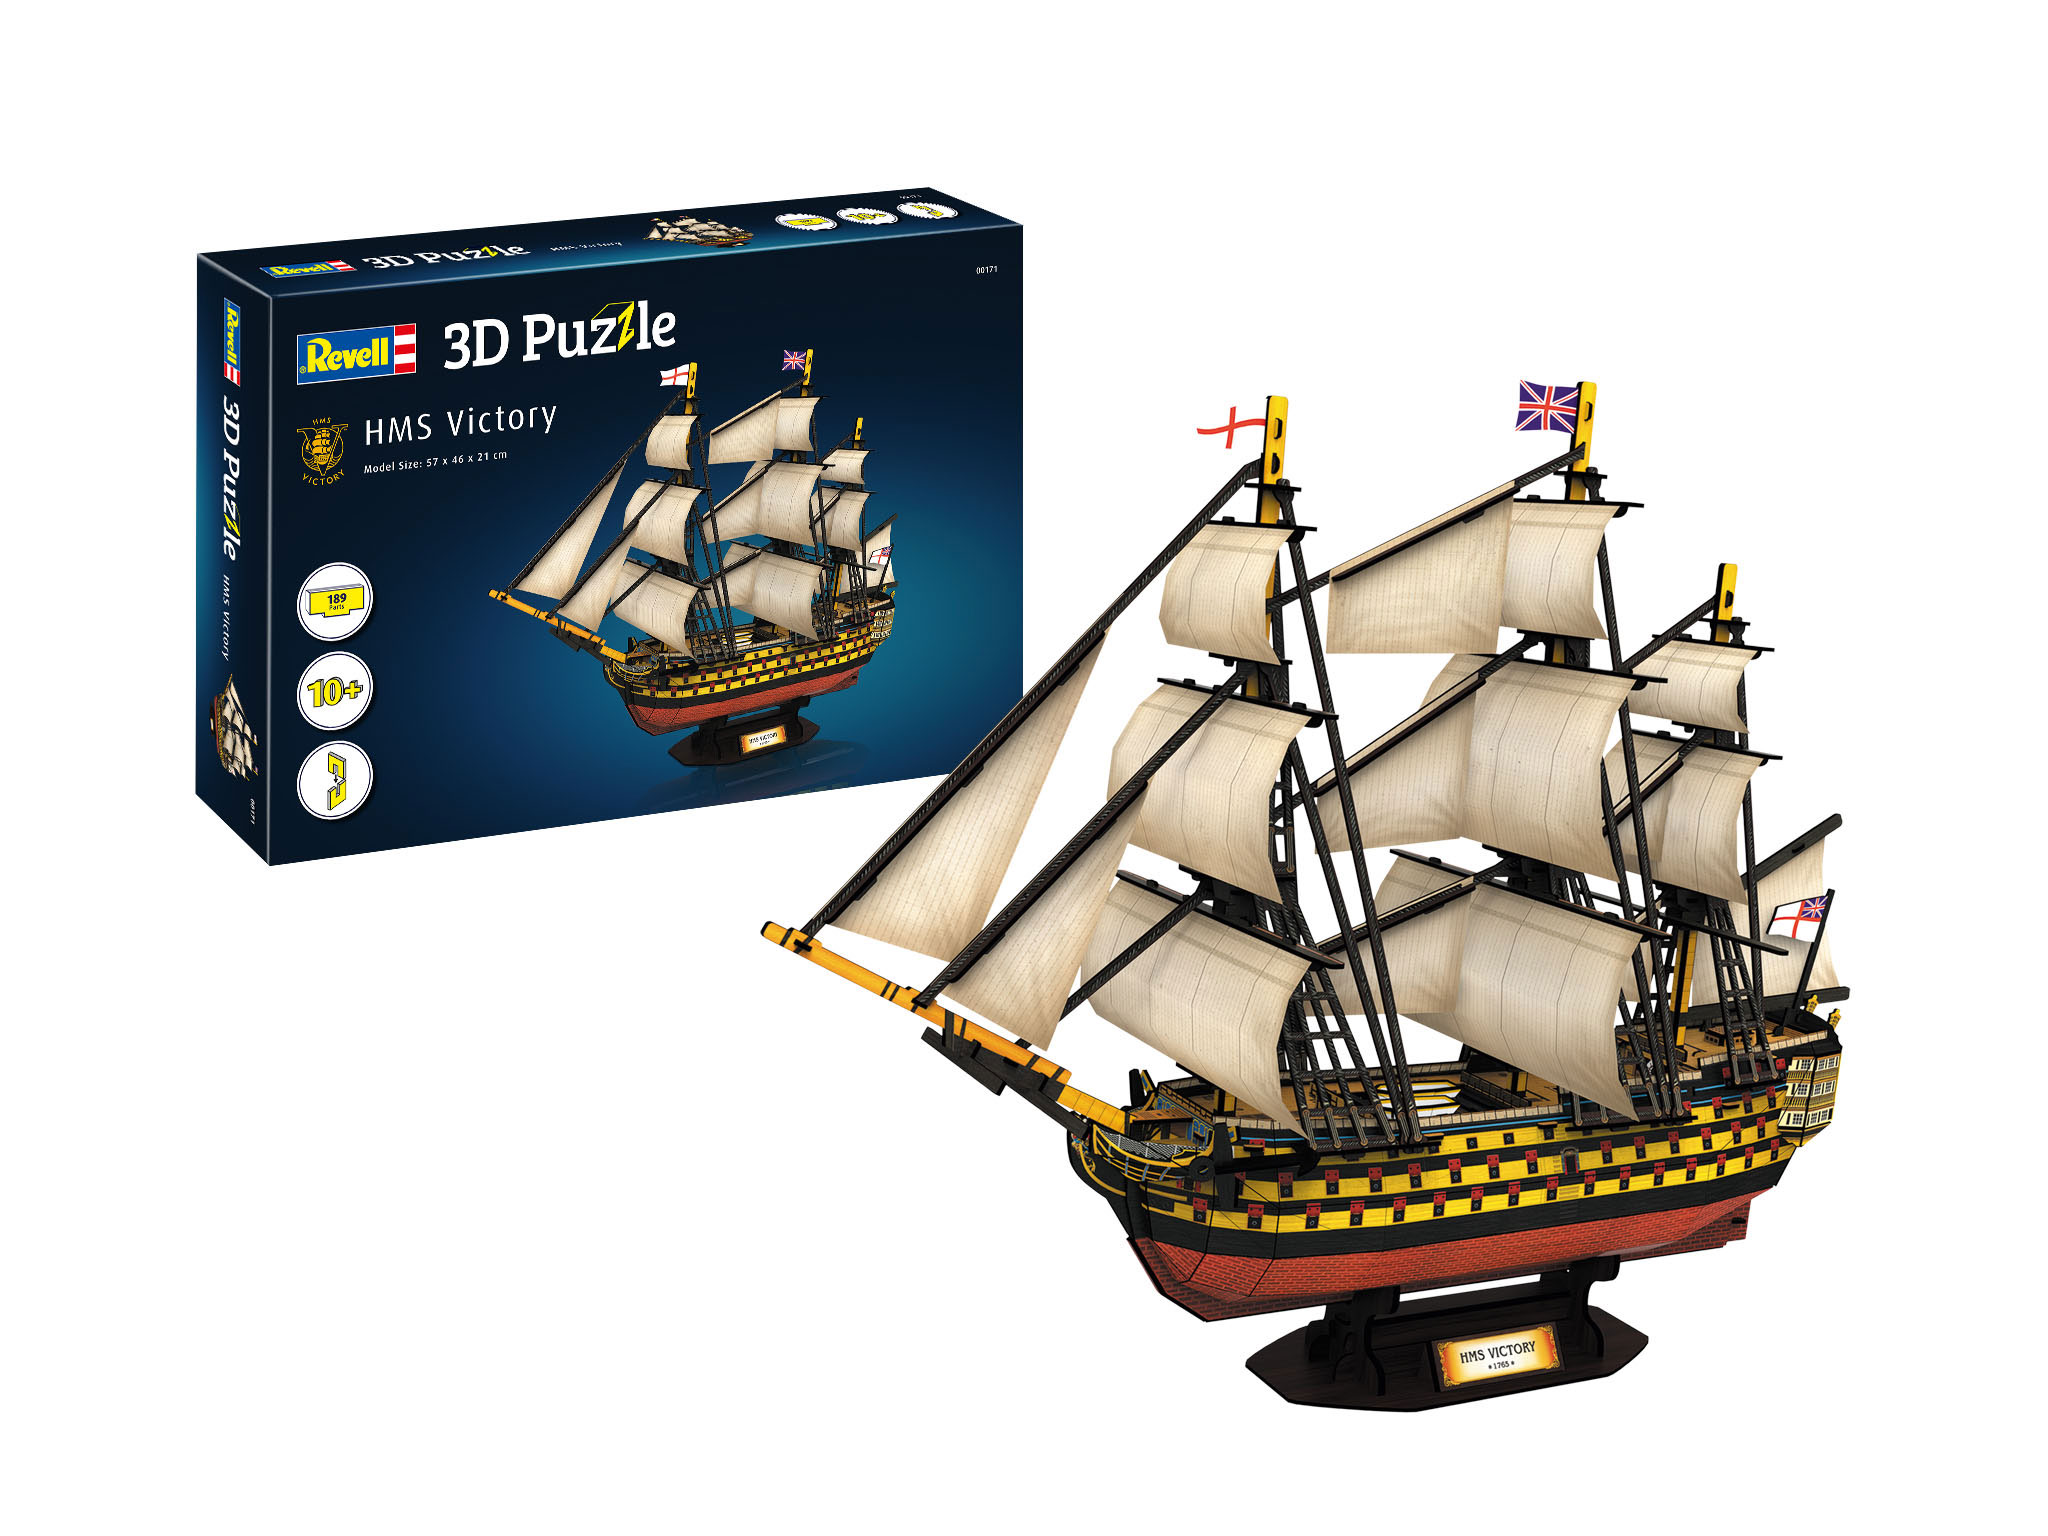 Revell 3D Puzzle - HMS Victory 00171